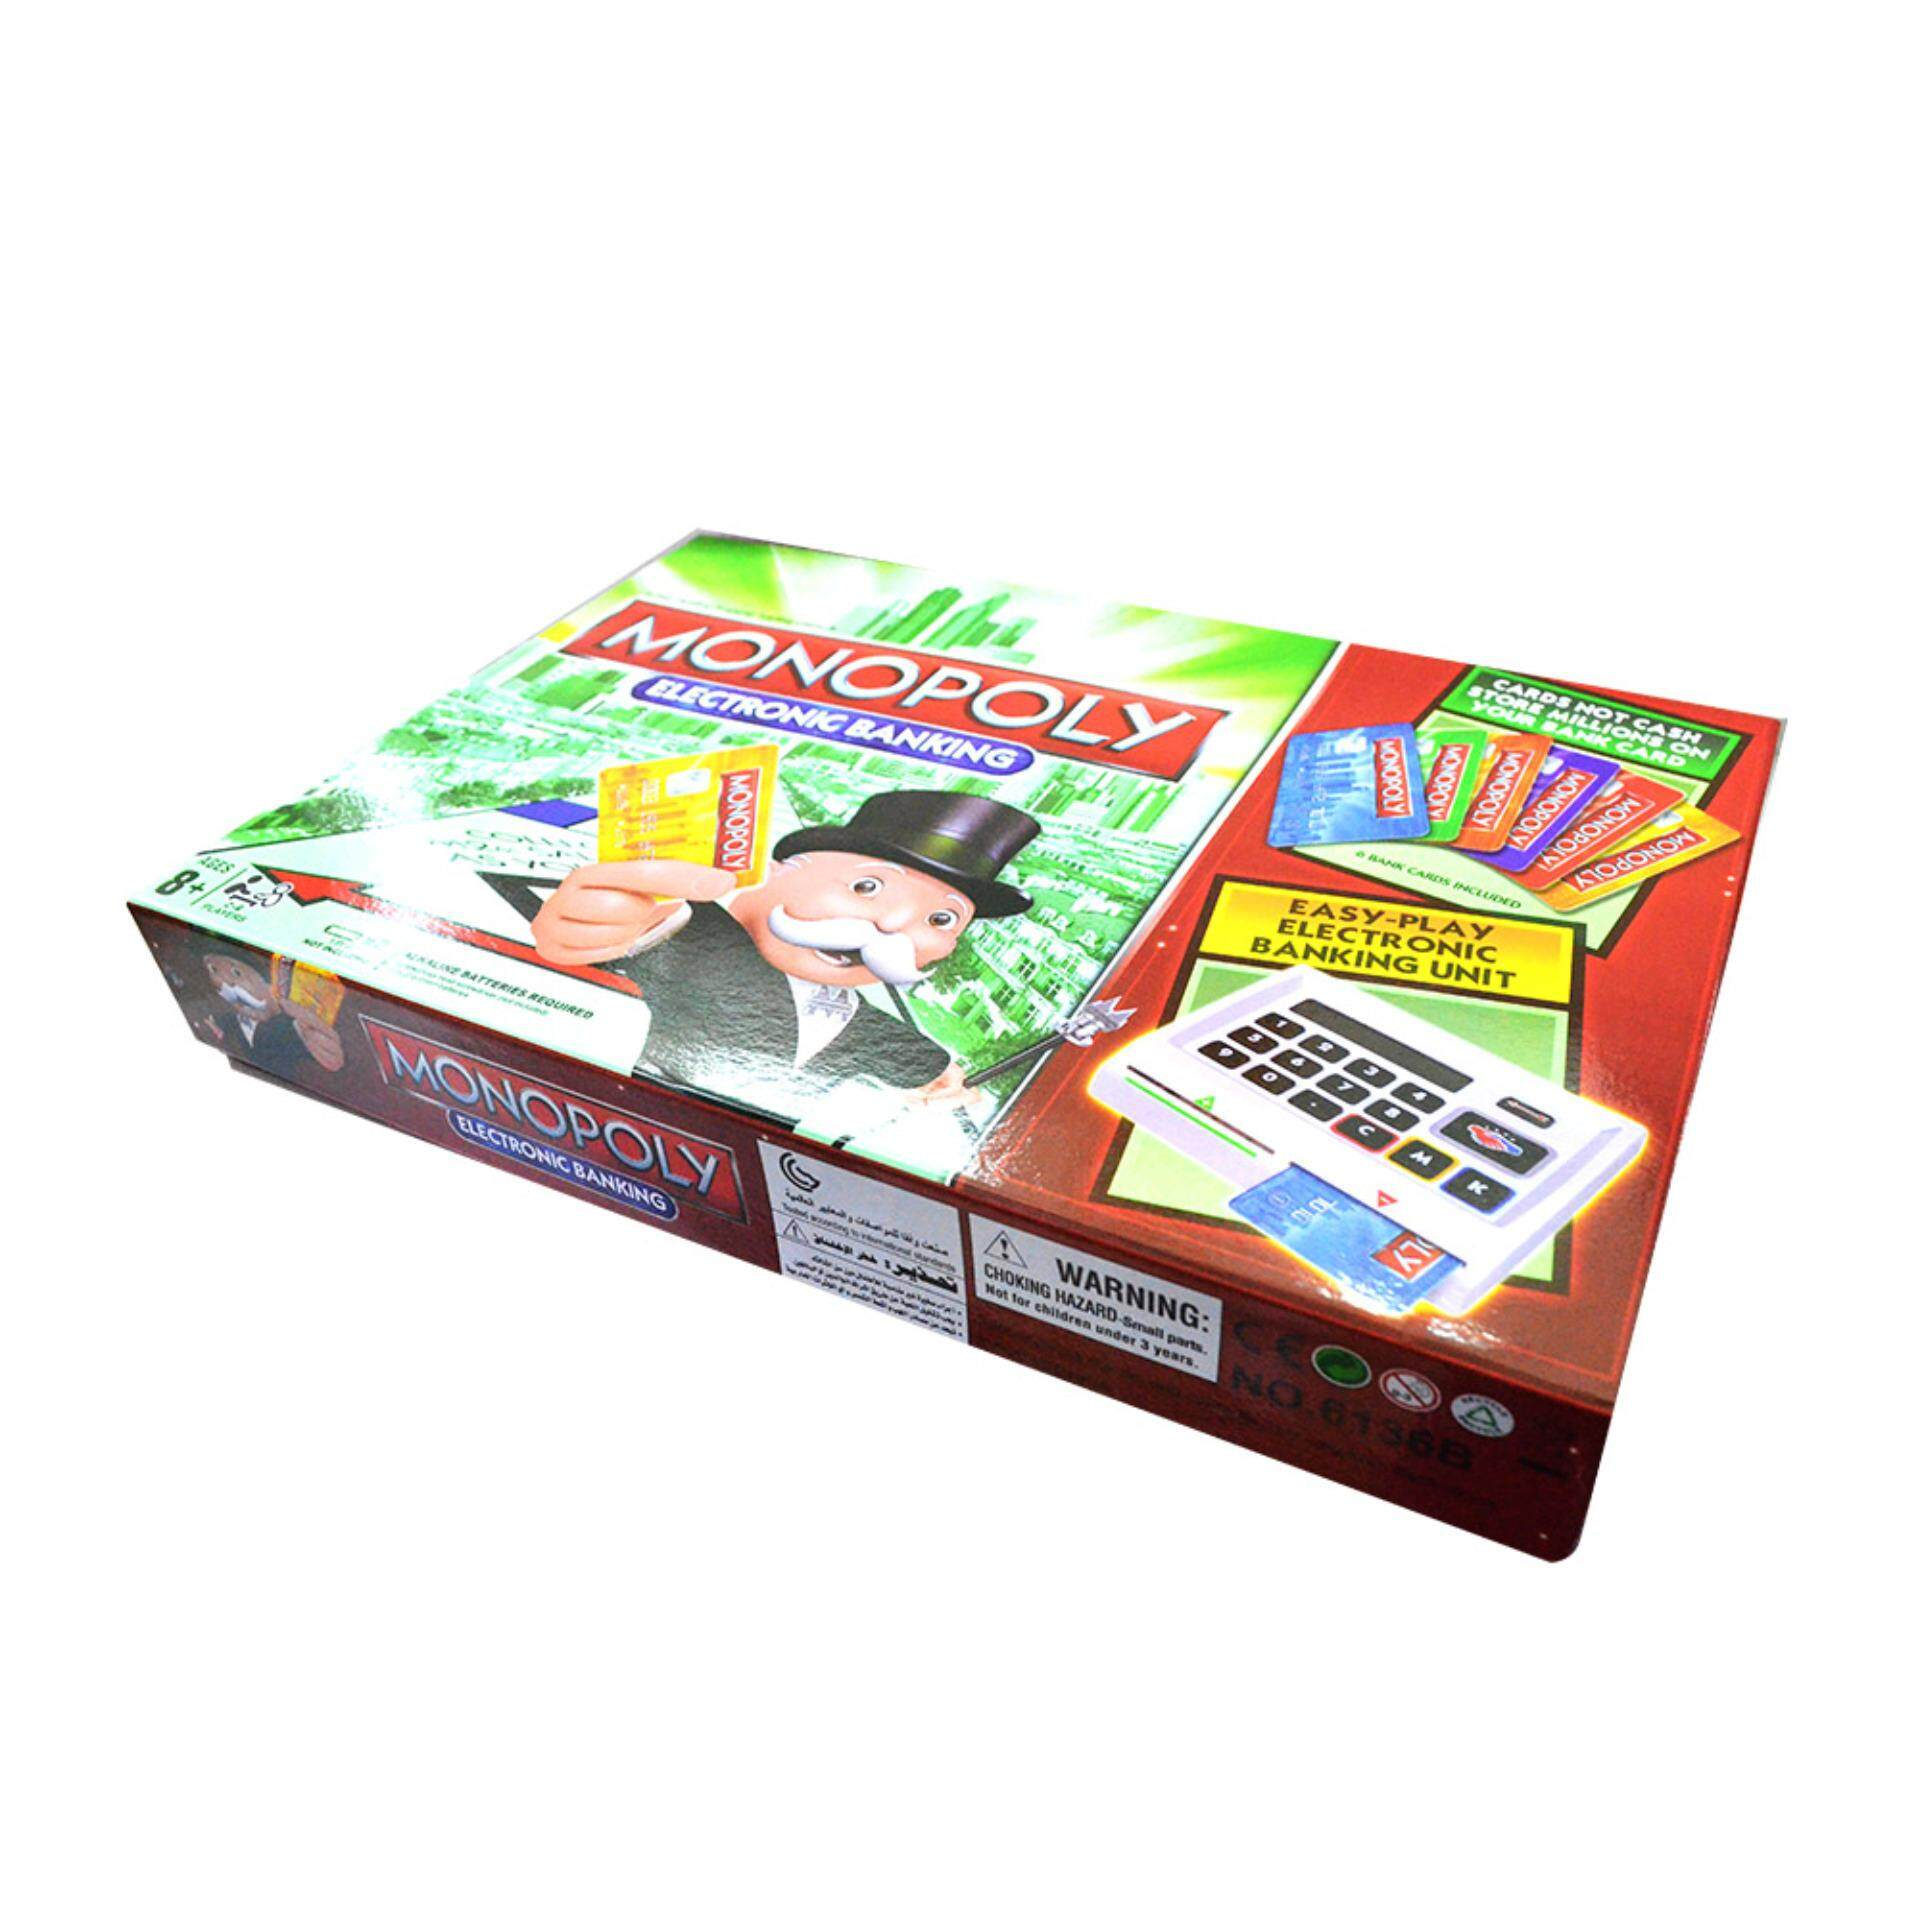 Monopoly electronic banking with e banking unit board game set lazada malaysia